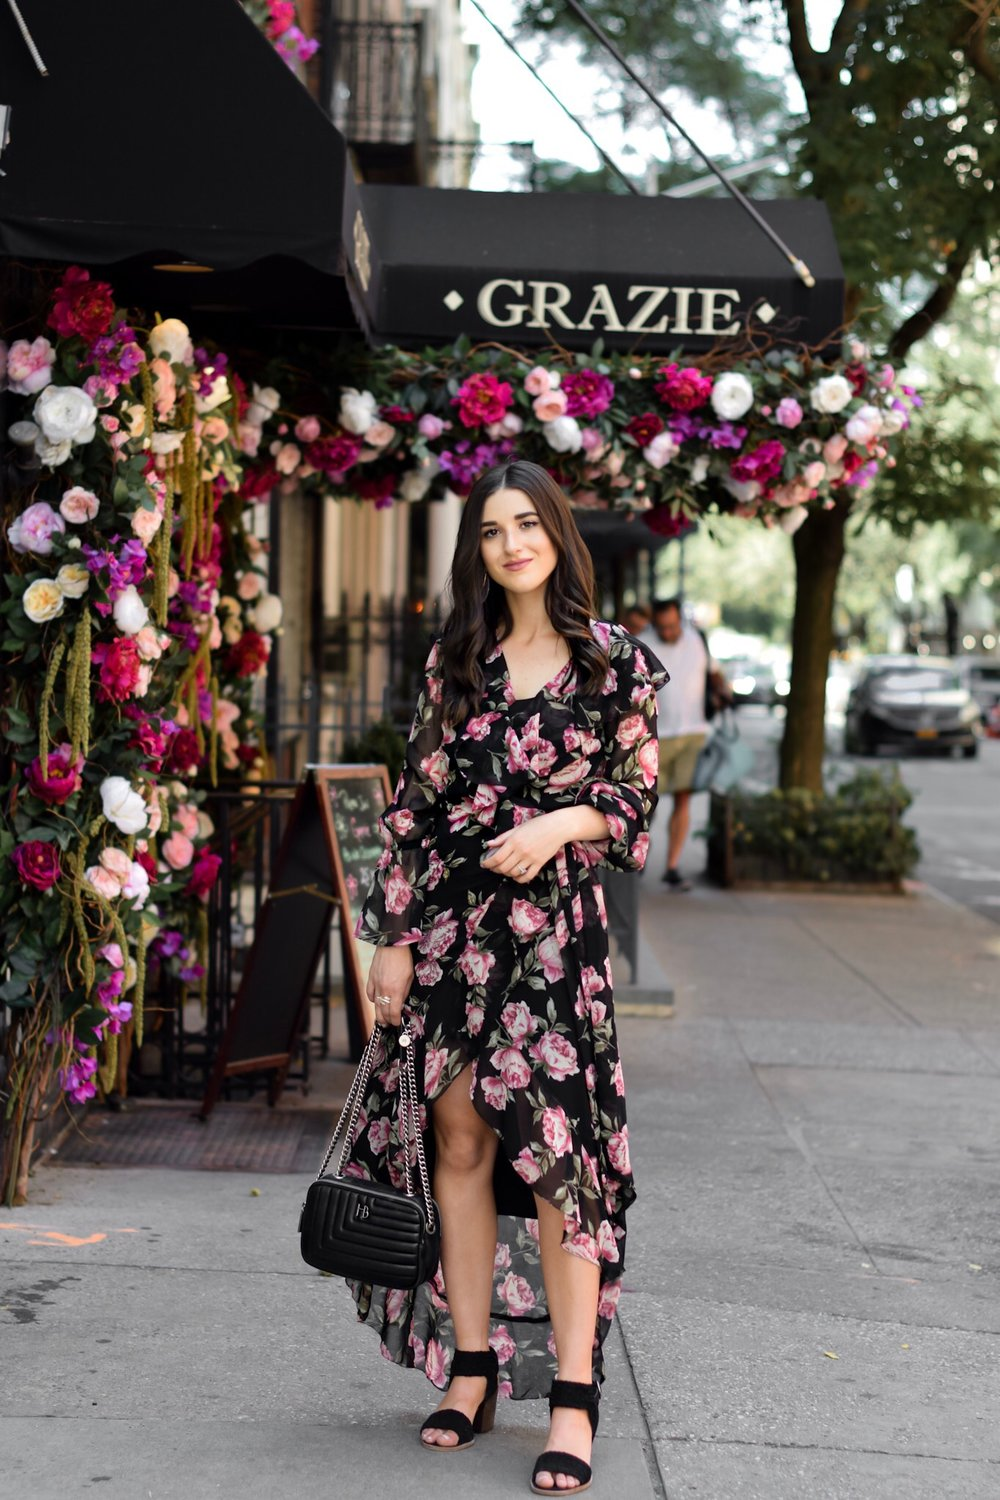 Why I'll Be Sitting Out My 11th Season Of NYFW Floral Maxi Wrap Dress Esther Santer Fashion Blog NYC Street Style Blogger Outfit OOTD Trendy ASOS Vince Camuto Black Braided Sandals Summer Look Floral Backdrop New York City Upper East  Side Photoshoot.jpg